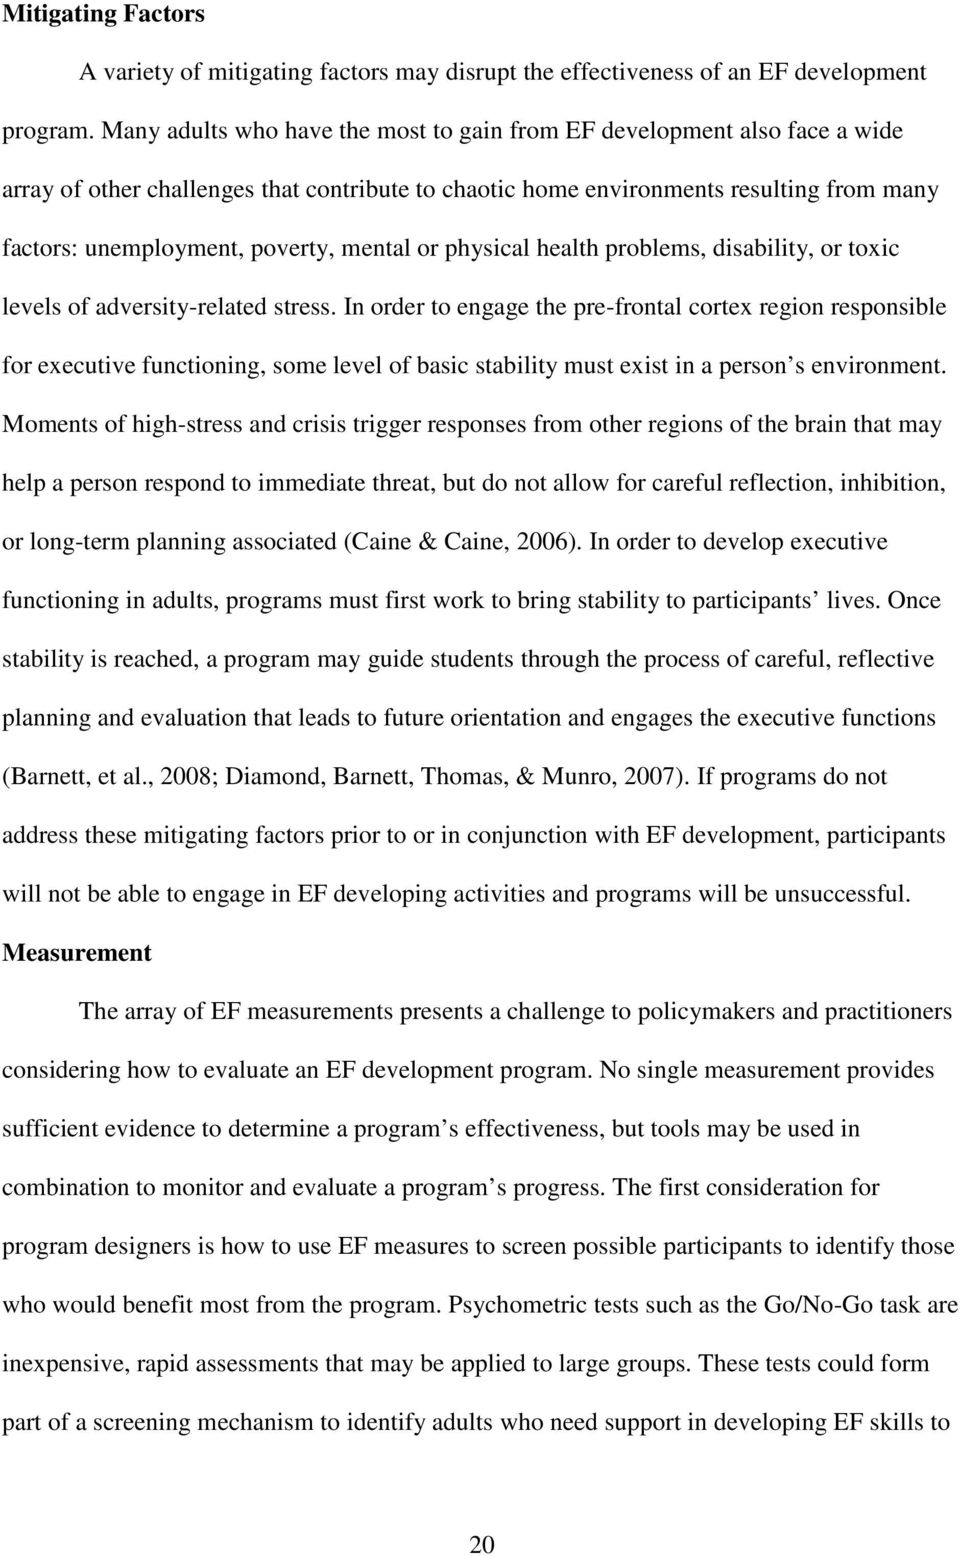 mental or physical health problems, disability, or toxic levels of adversity-related stress.